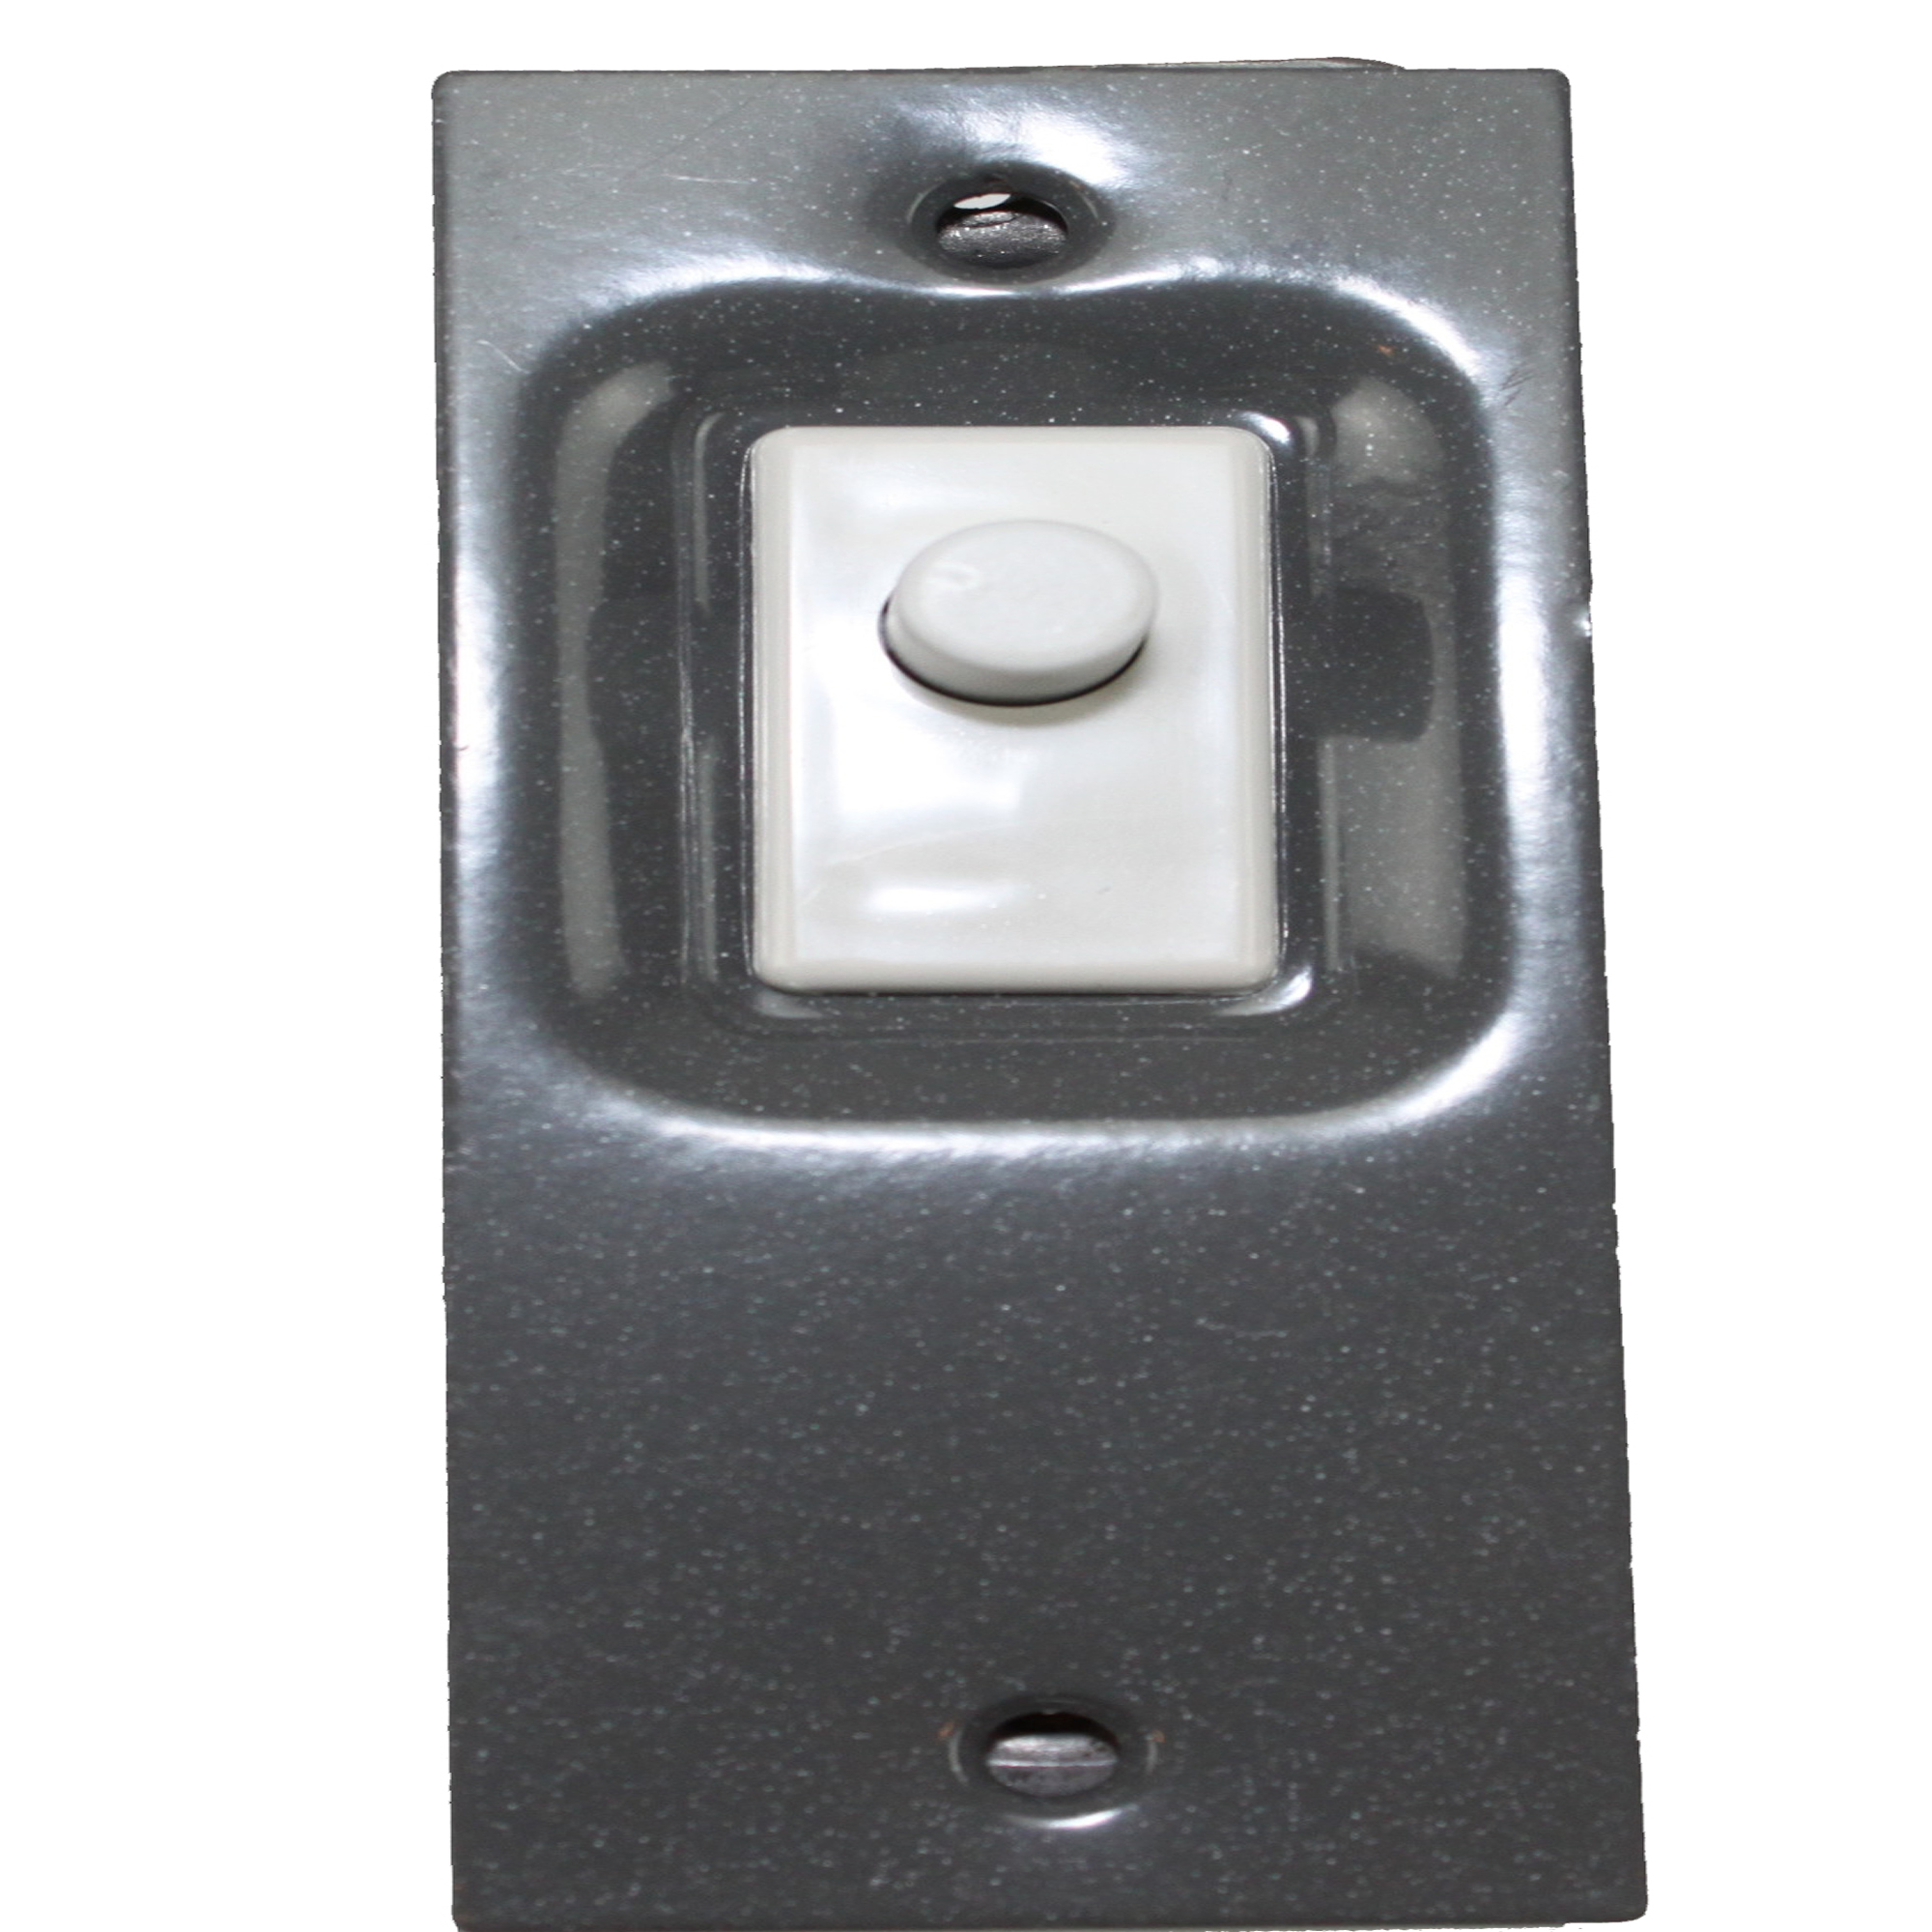 edwards est 502a automatic closet door light switch 120v